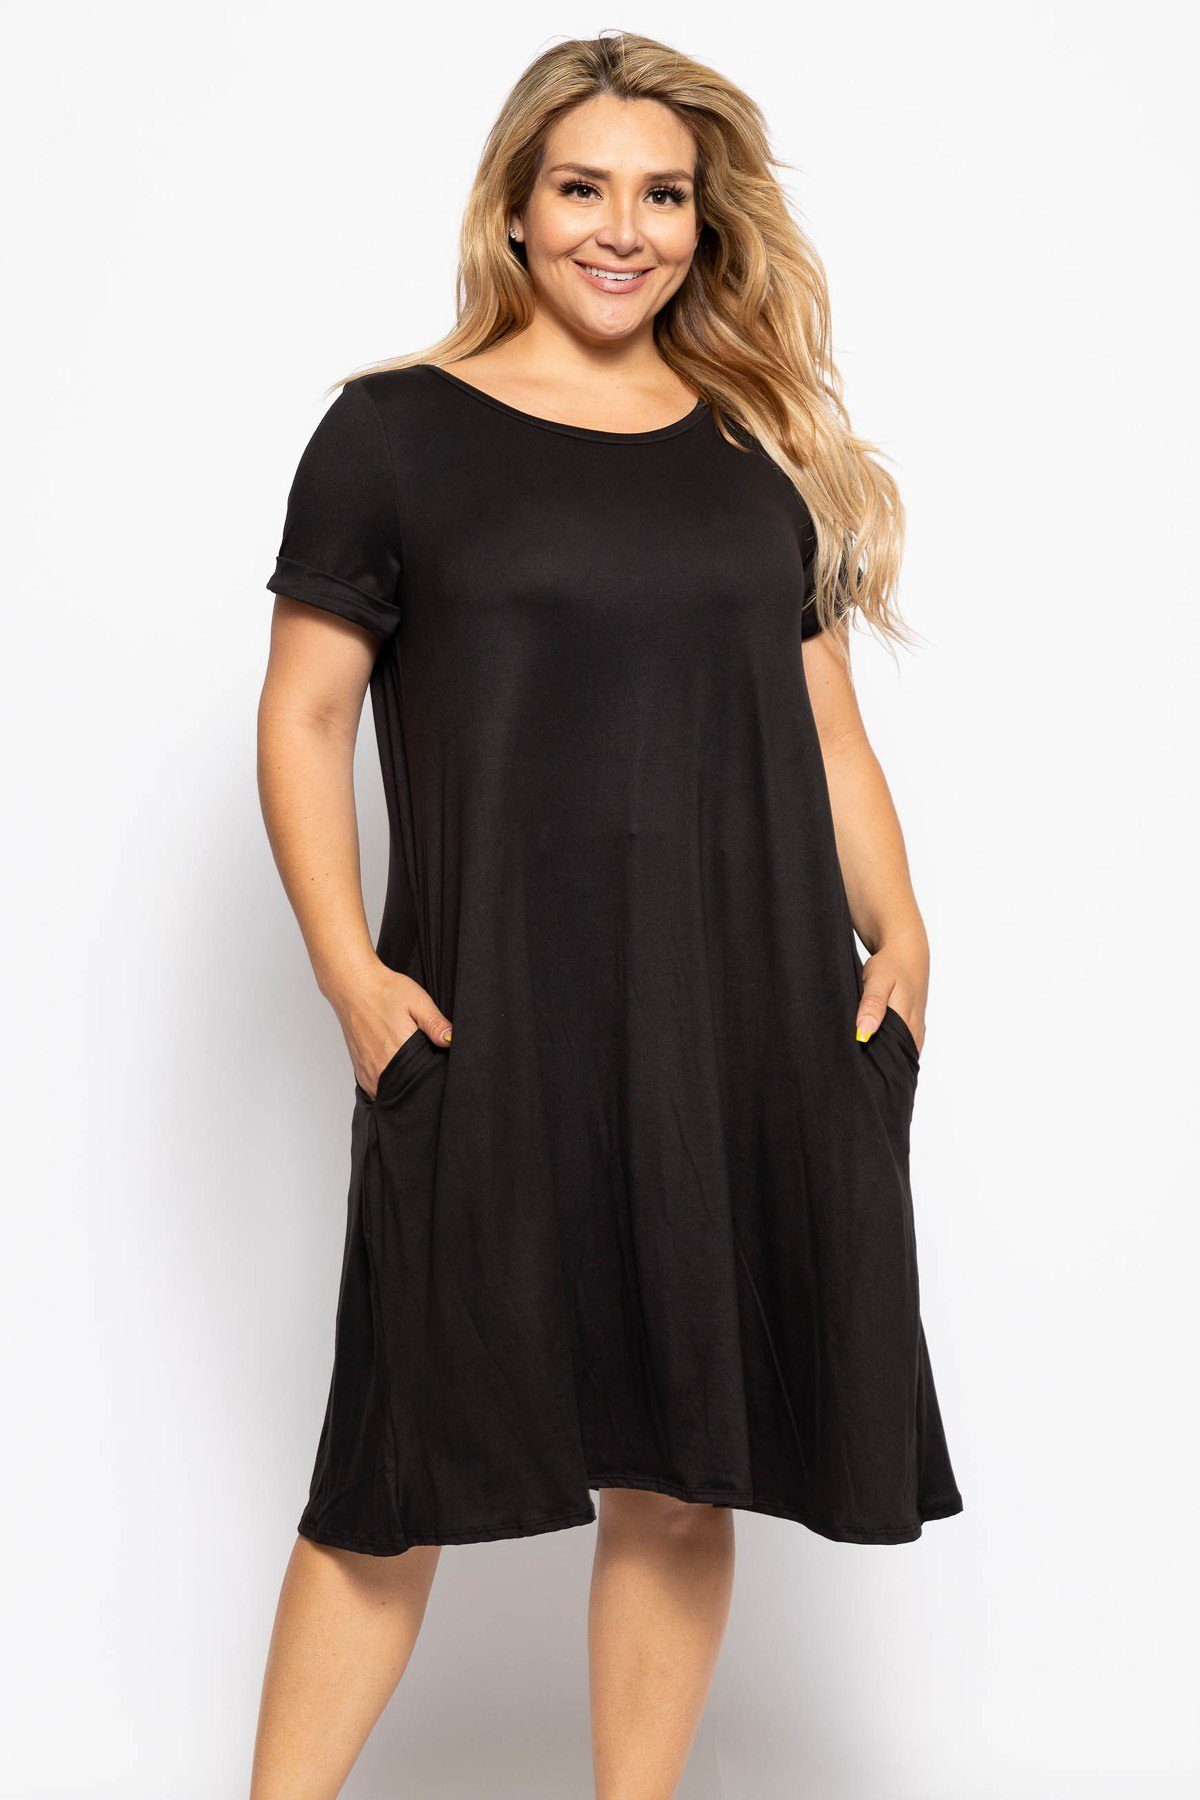 Crew Neckline Solid A-line Dress - FitBeautyTrends